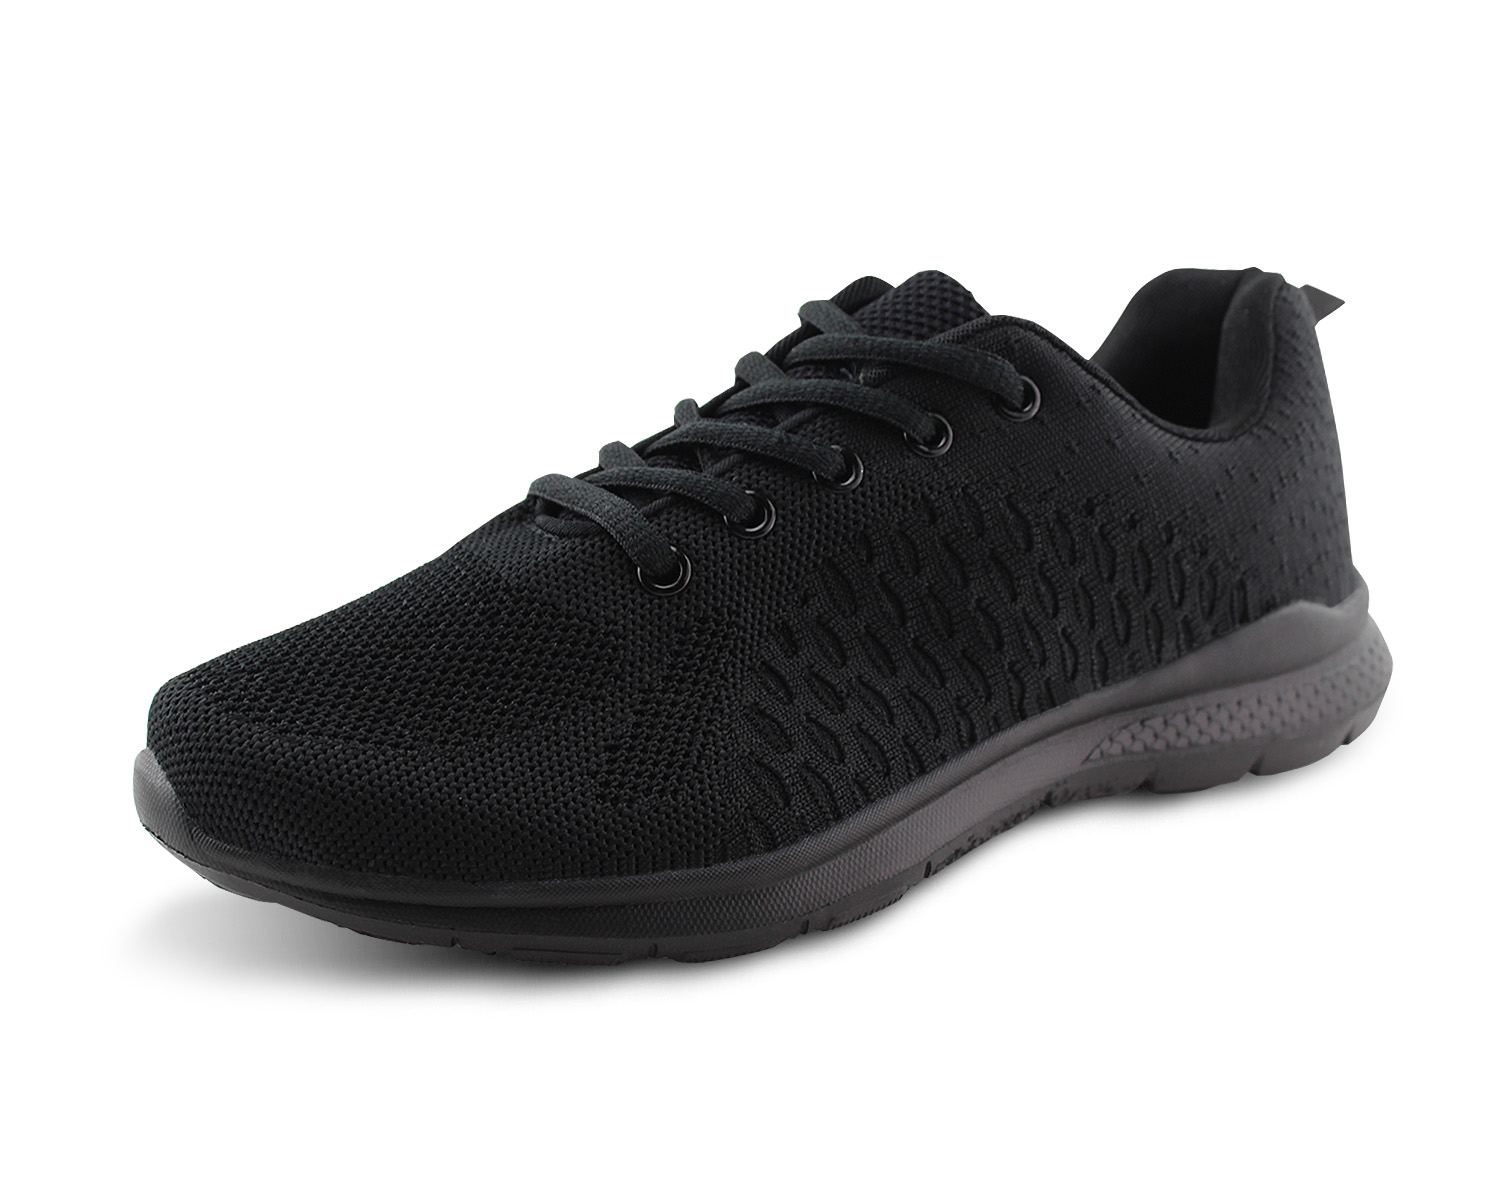 JABASIC Women Breathable Knit Running Sneakers Casual Tennis Shoes Lightweight Sport Shoes